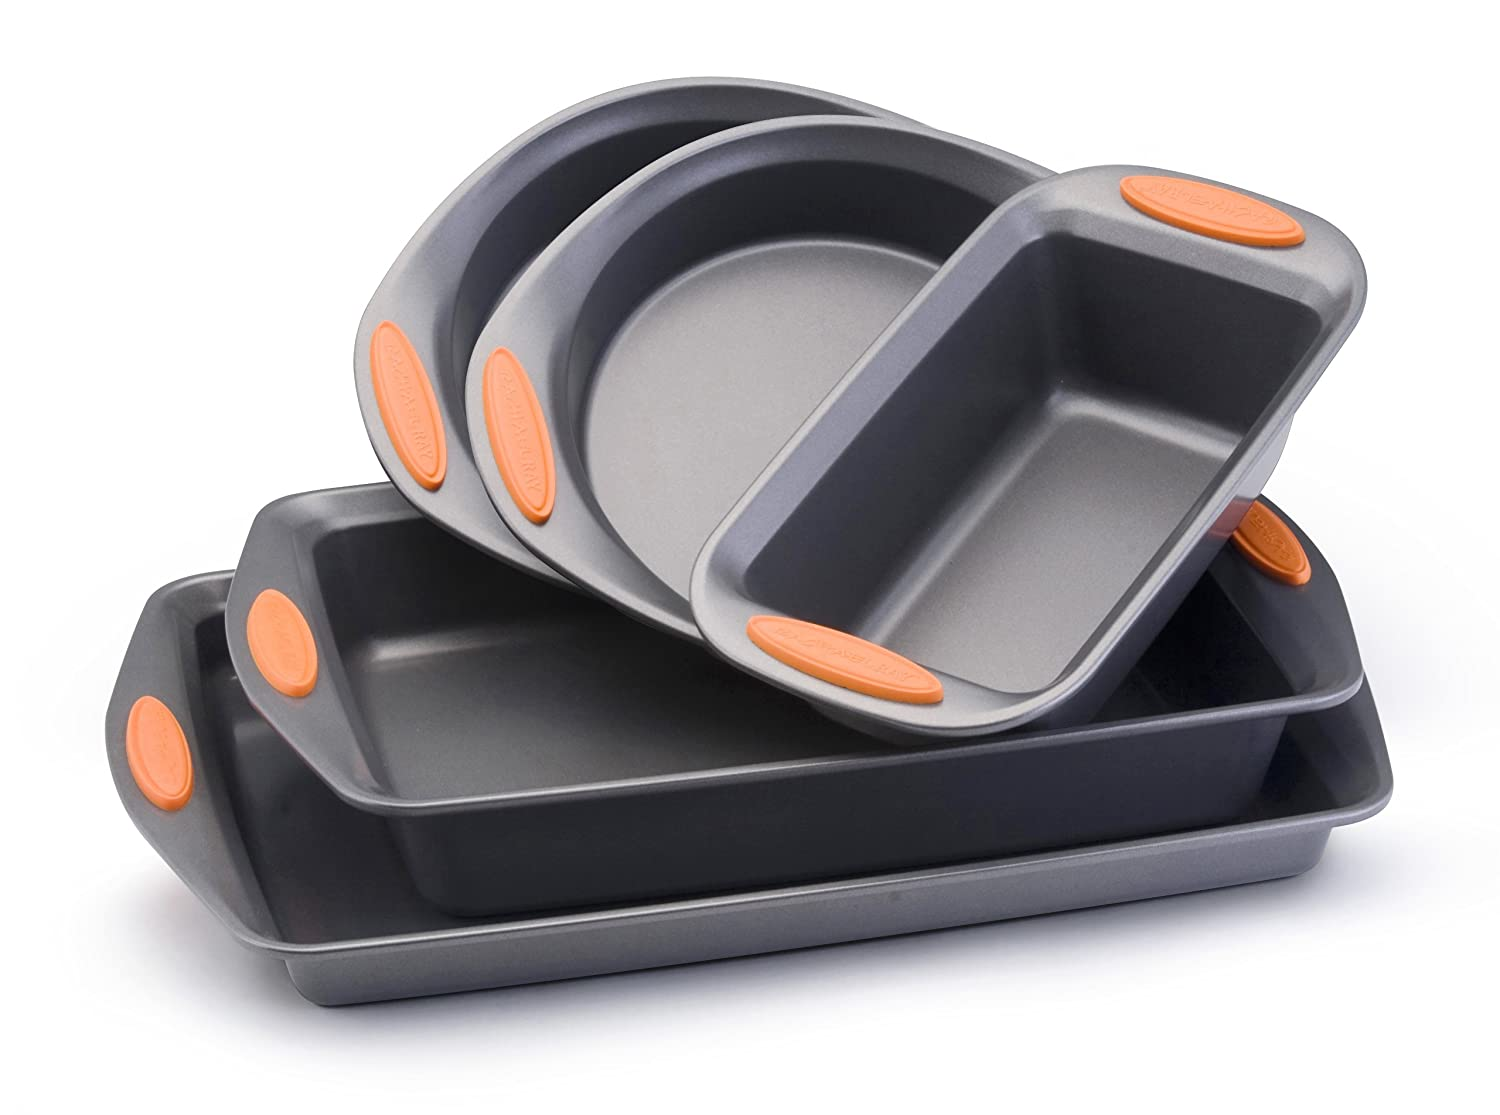 Best bakeware sets